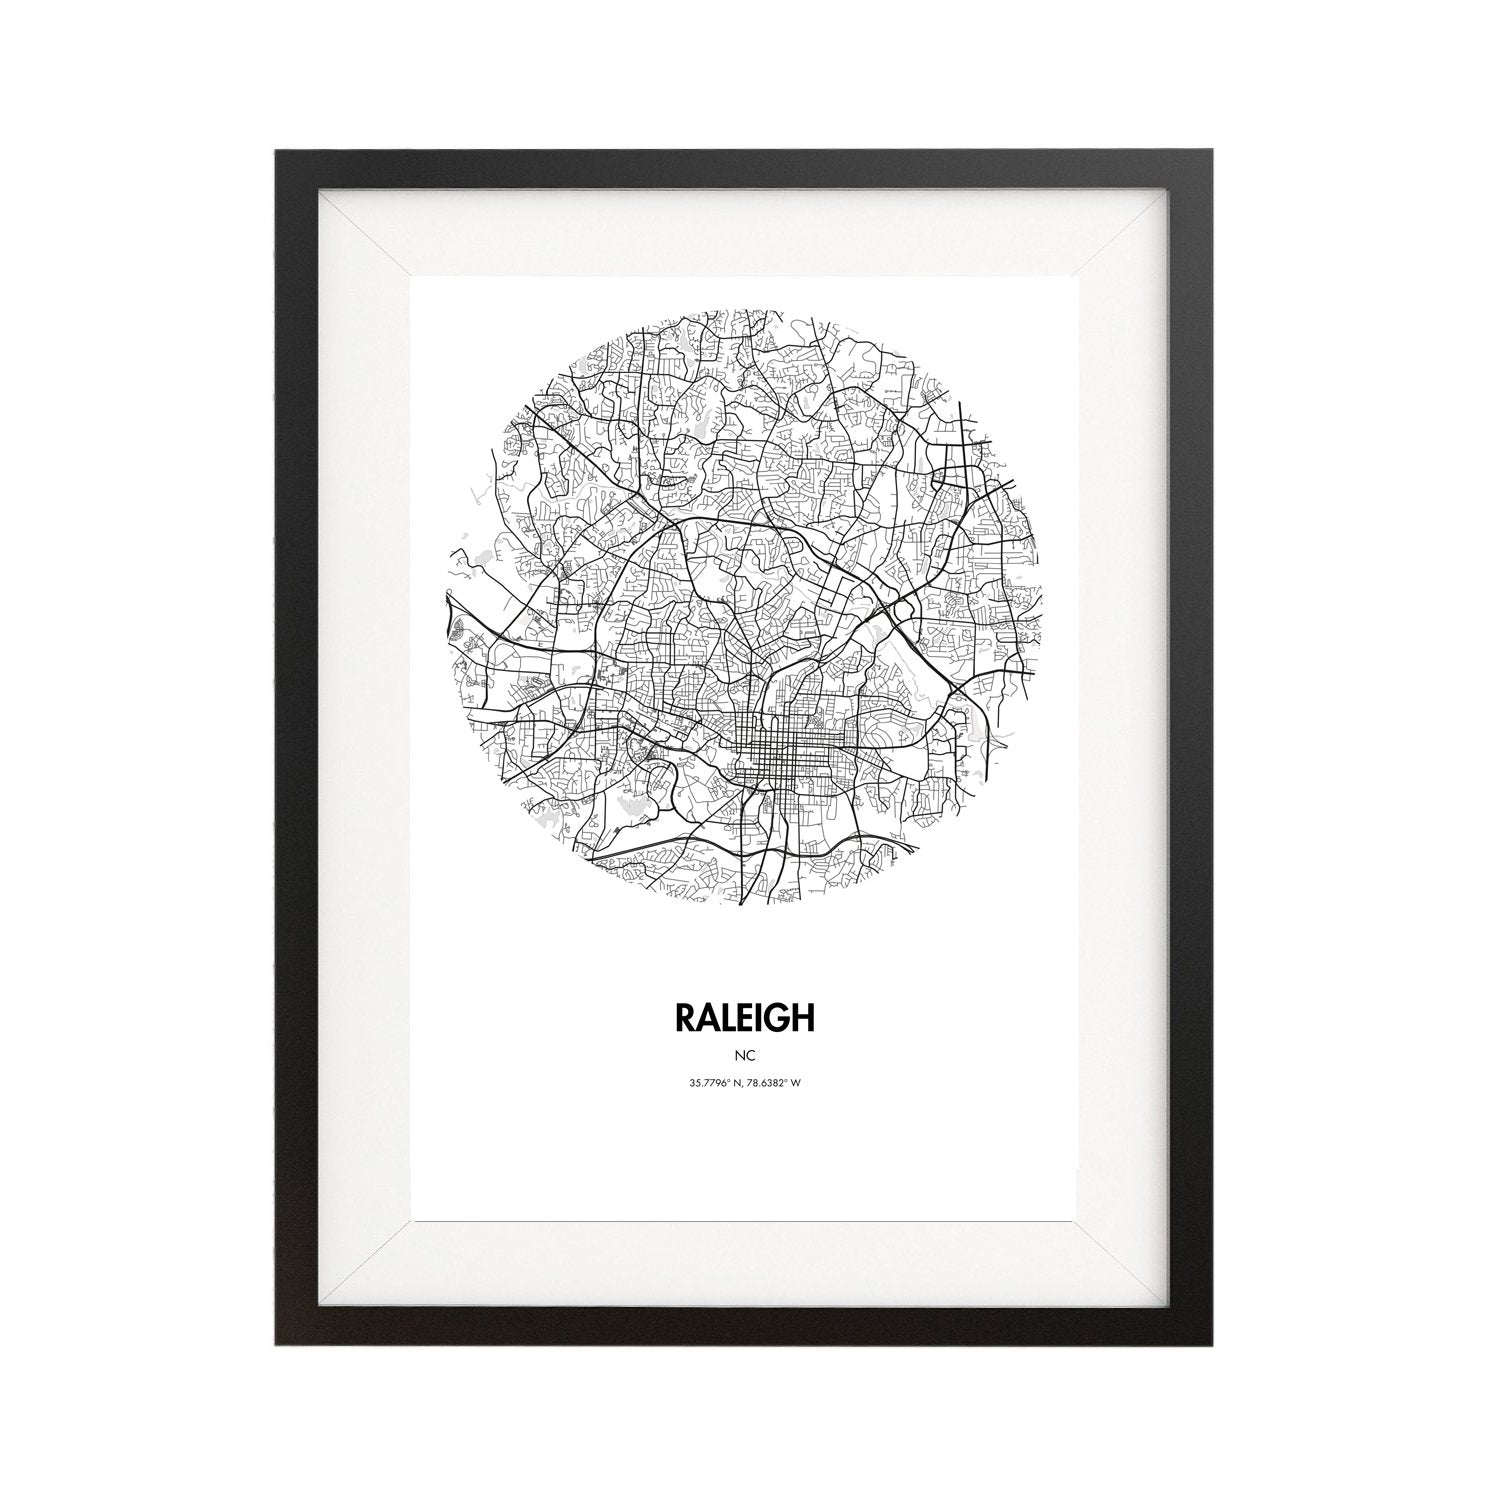 Buy Raleigh Map Poster - 18 by 24 inch Map Print Online on